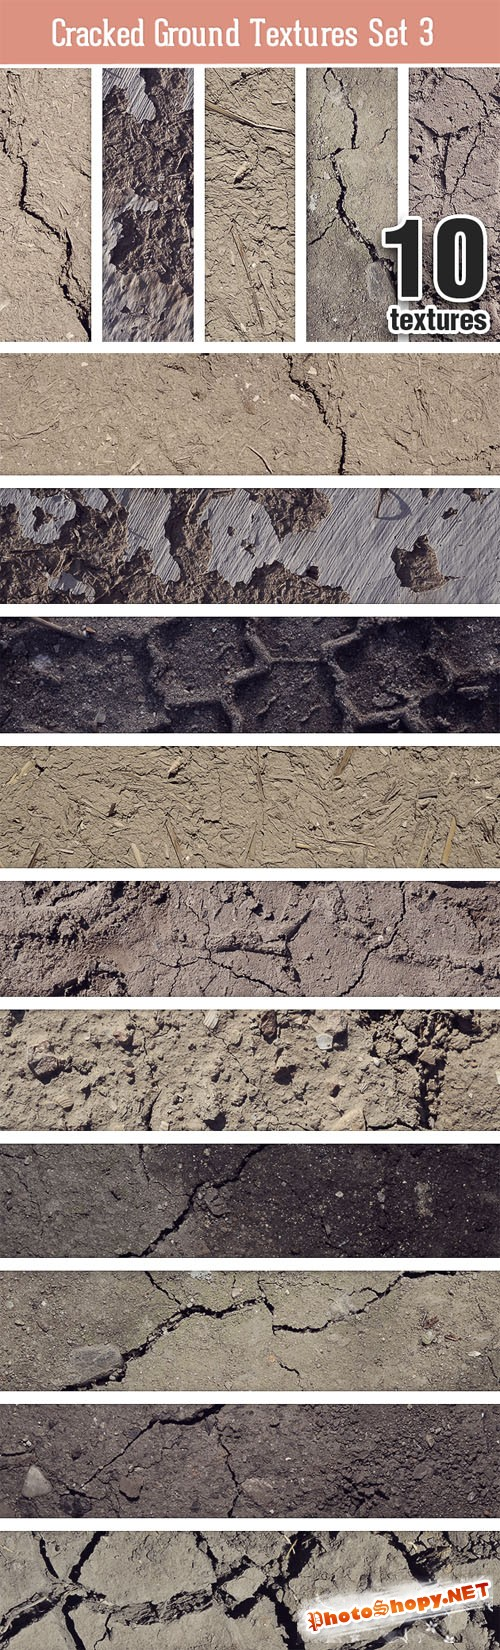 Designtnt - Cracked Ground Texture Set 3